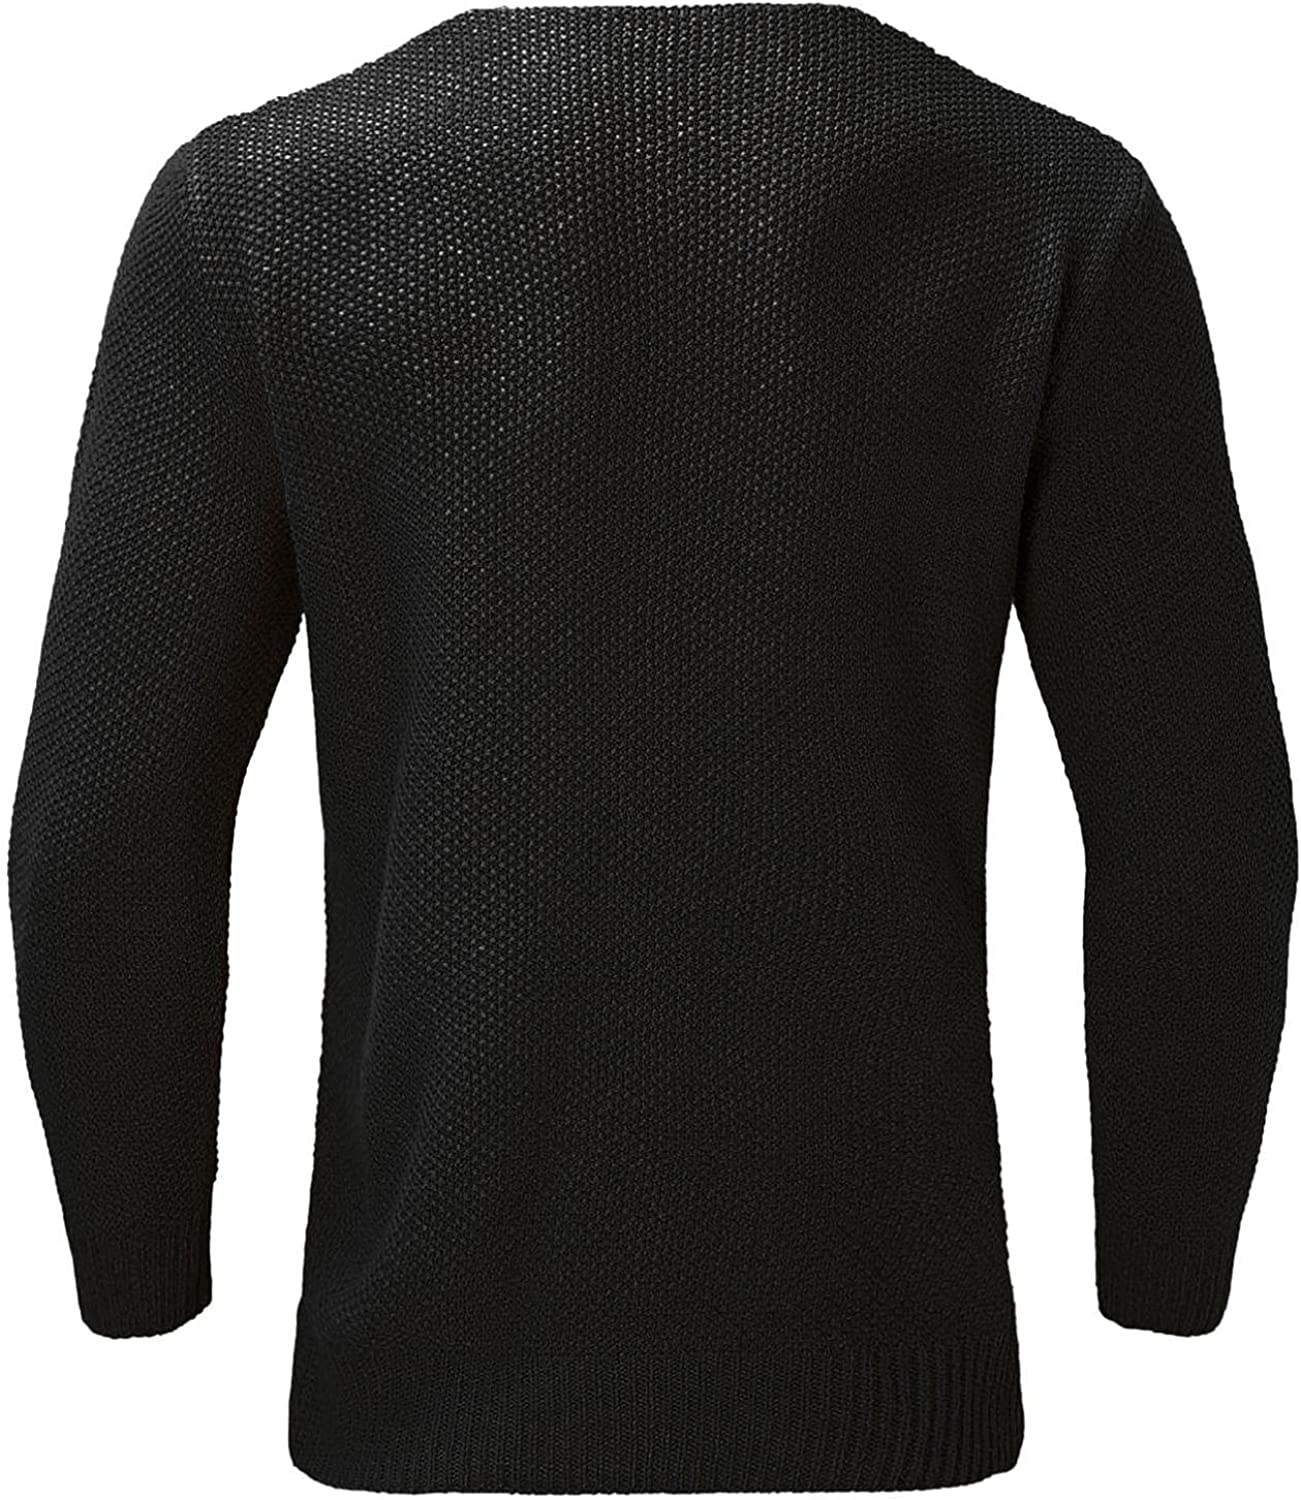 VEKDONE Men's Cashmere Wool Blend Relaxed Fit V Neck Pullover Sweater Autumn and Winter Stretch Long Sleeve Outerwear